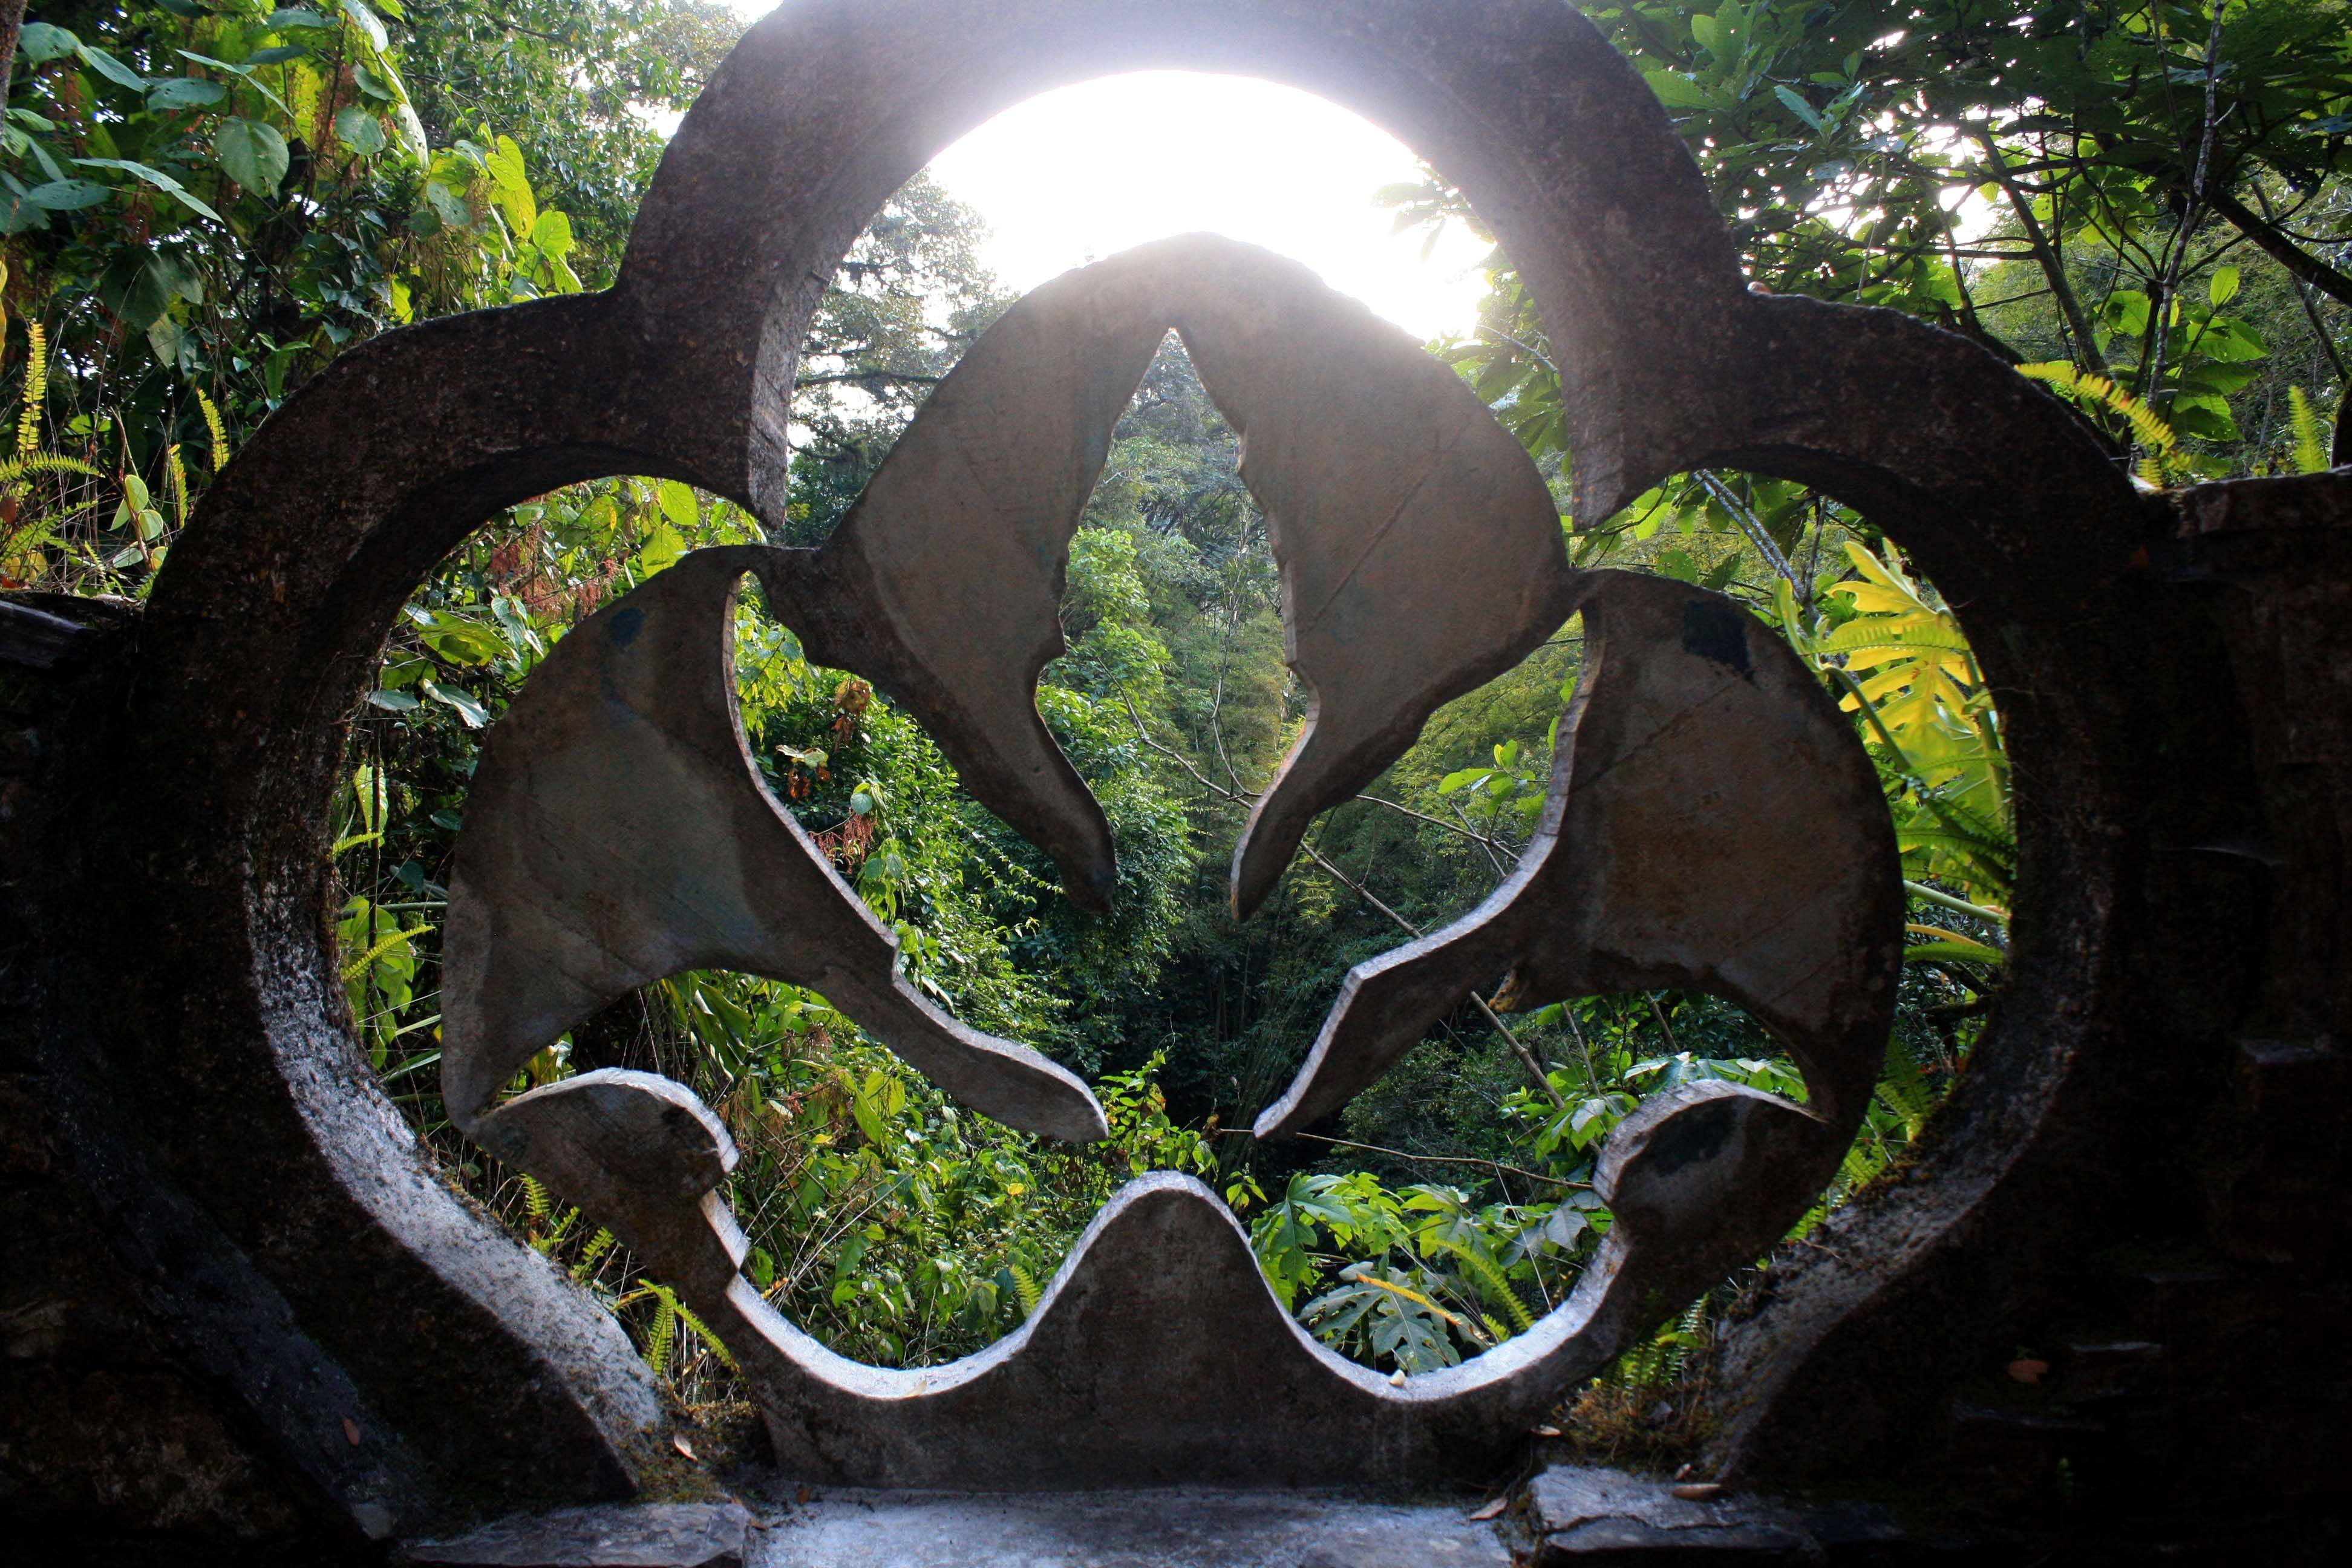 Trees are framed through a concrete philodendron sculpture at Las Pozas, which is located on a 100-acre hillside where the Sierra Madre mountains and coastal plains of the northeast state of San Luis Potosi meet in Mexico.